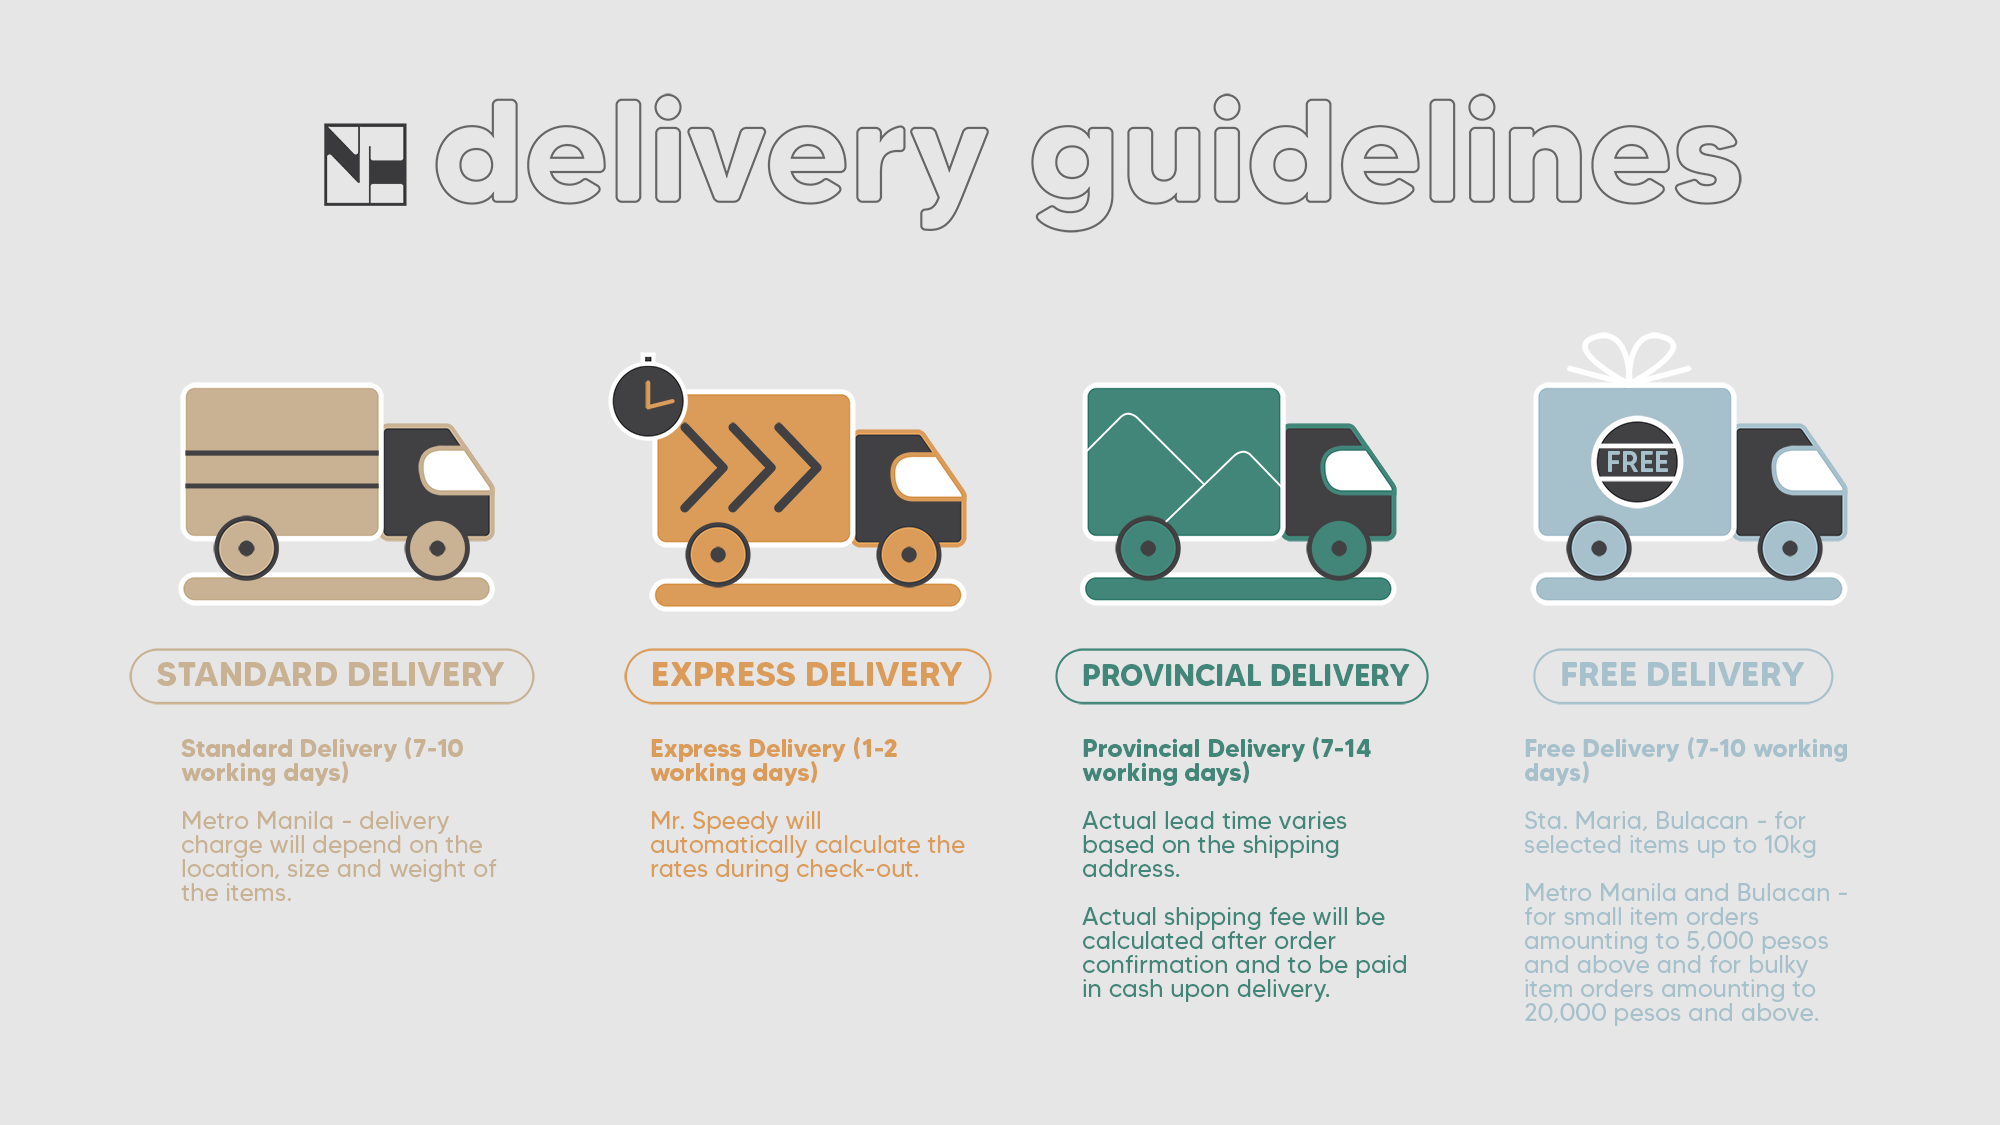 North Hjem Delivery Guidelines